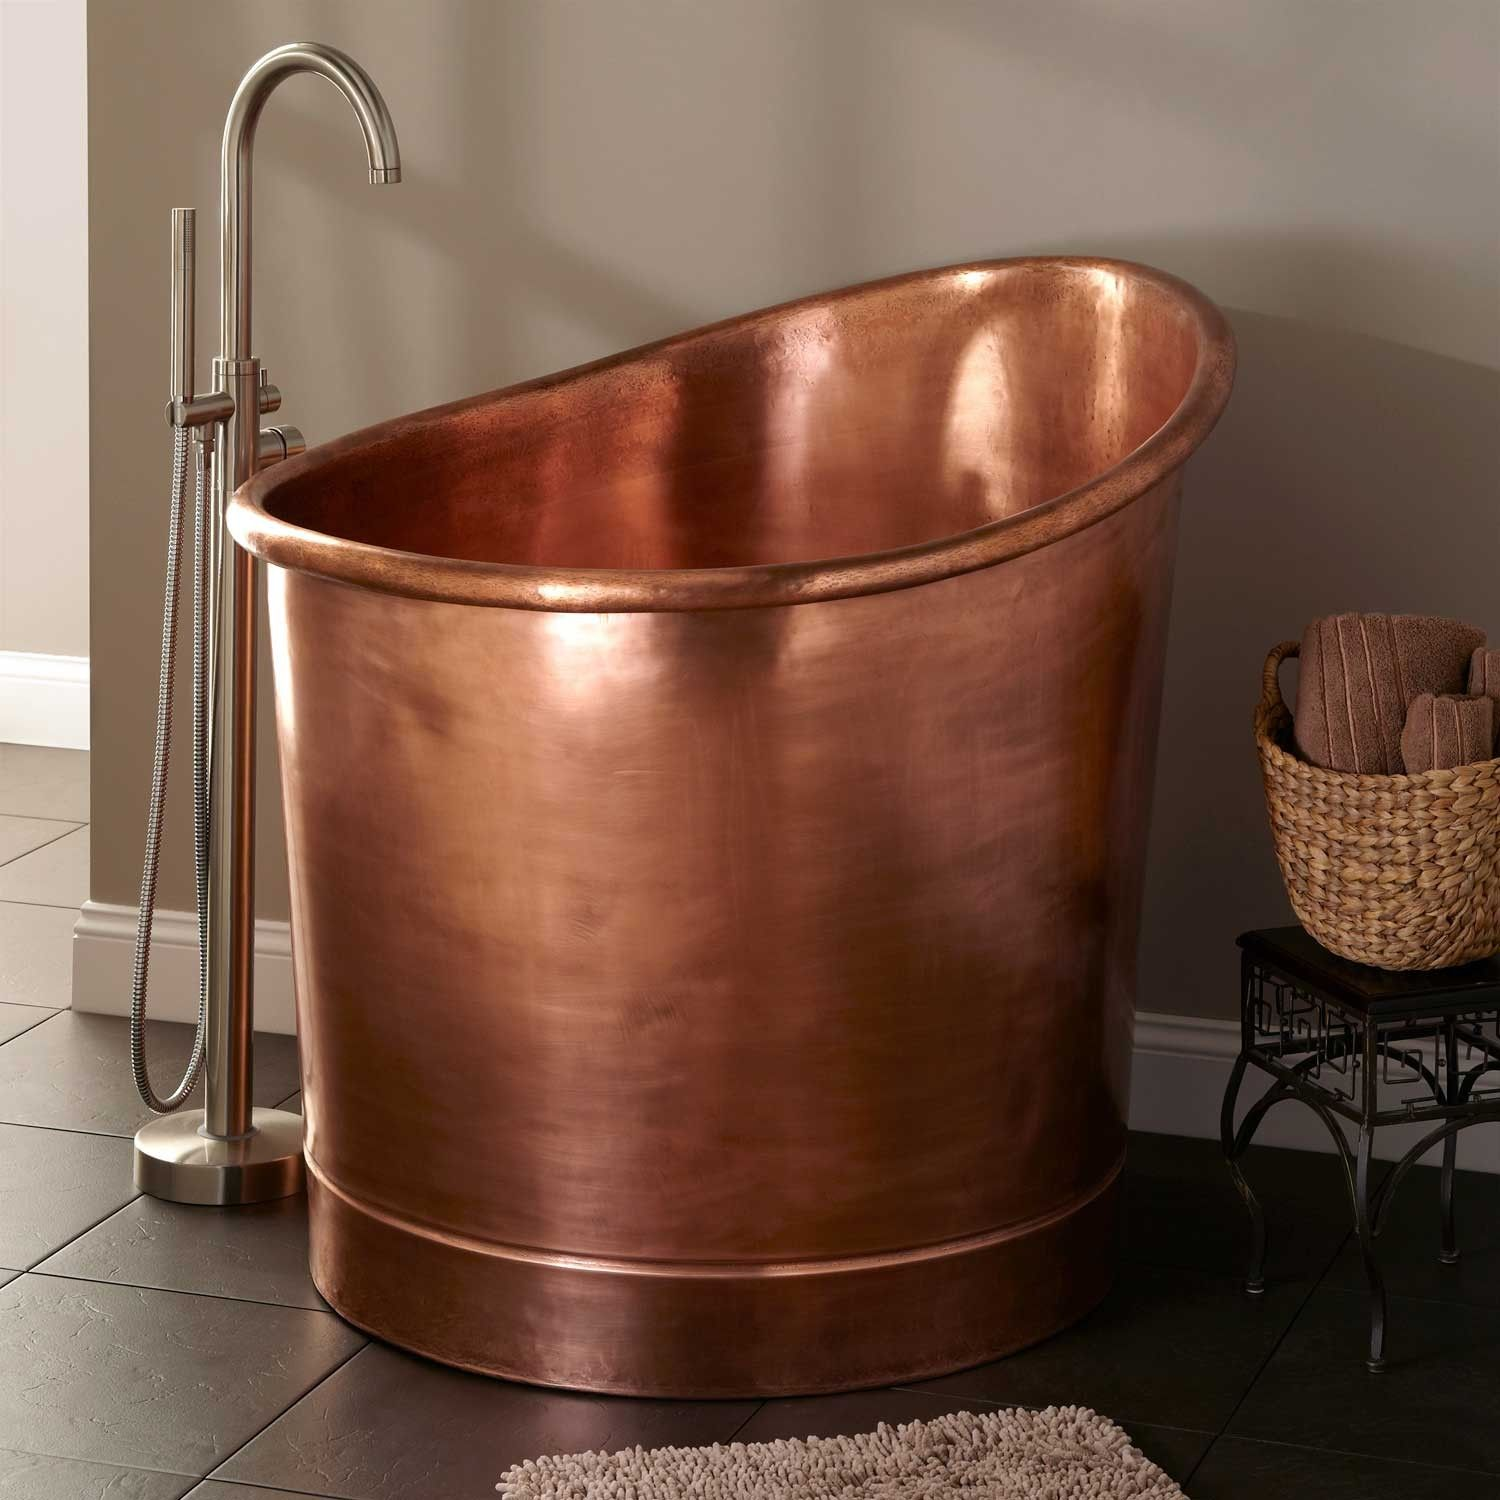 Velletri Copper Japanese Soaking Tub Copper House And I Love - Japanese soaking tub